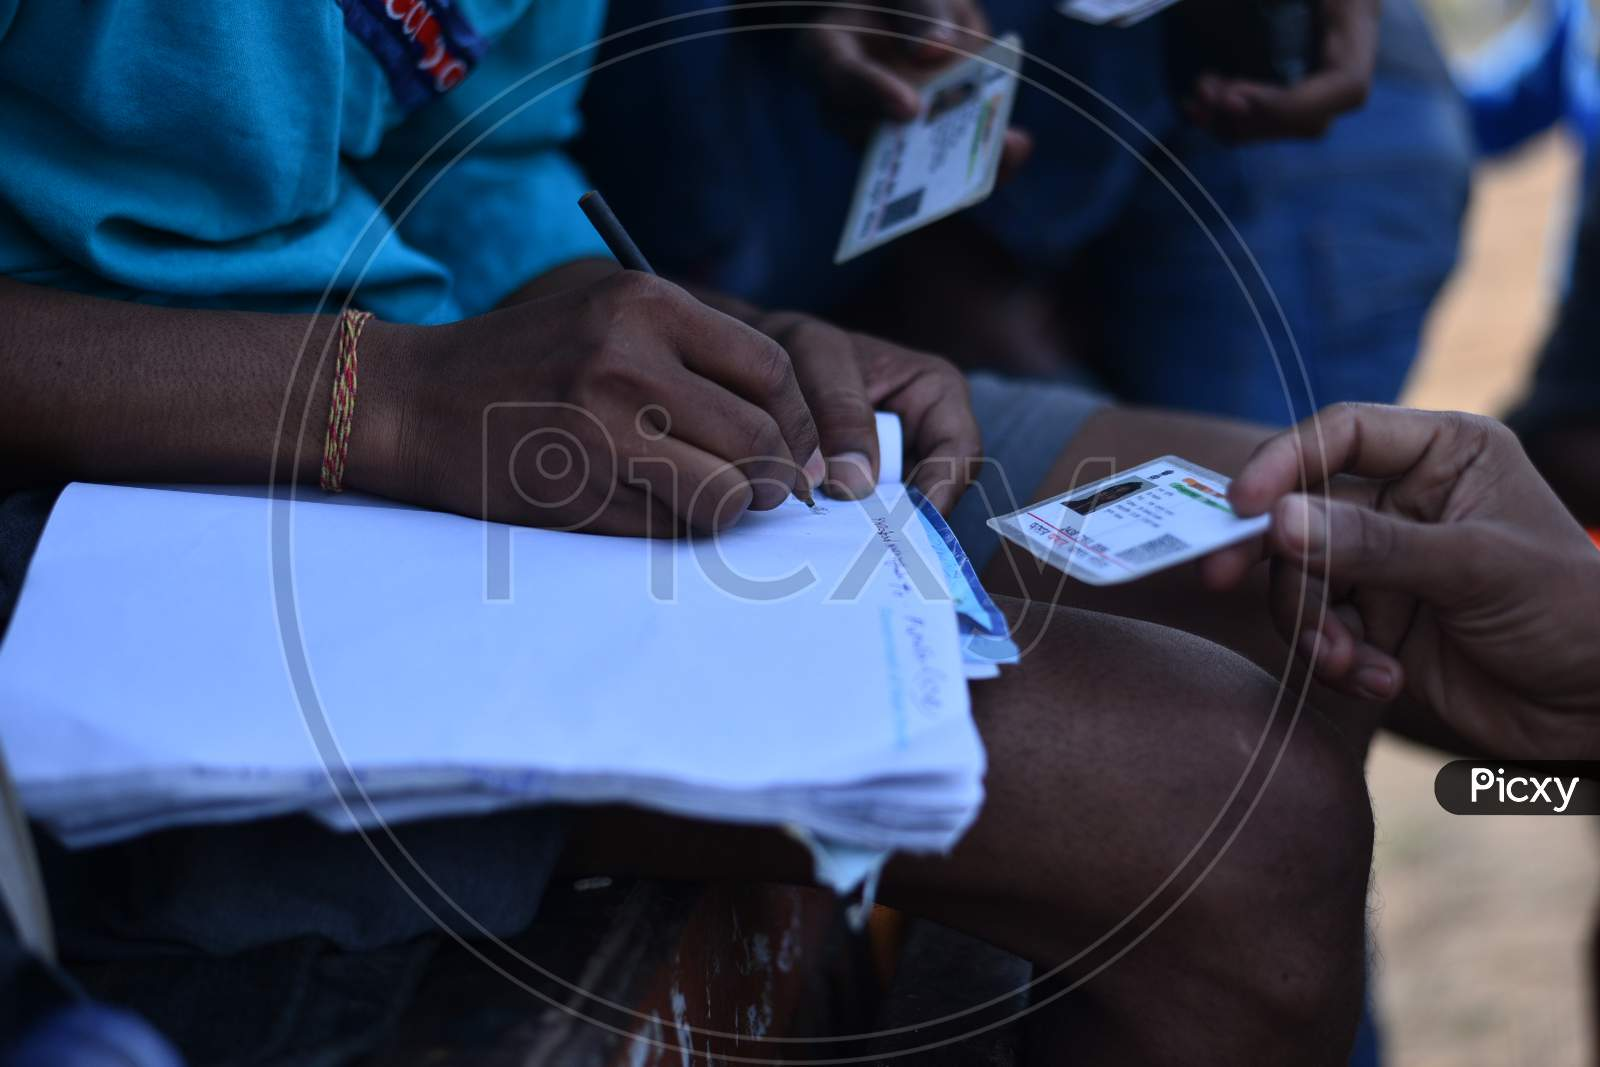 Migrant Workers From West Bengal And Bihar Write Down Their Aadhar Details In A Paper As They Wait For Permission To Cross Telangana State At A Checkpost In Aswaropeta During An Extended Lockdown Amid Coronavirus Fears, May 16,2020.